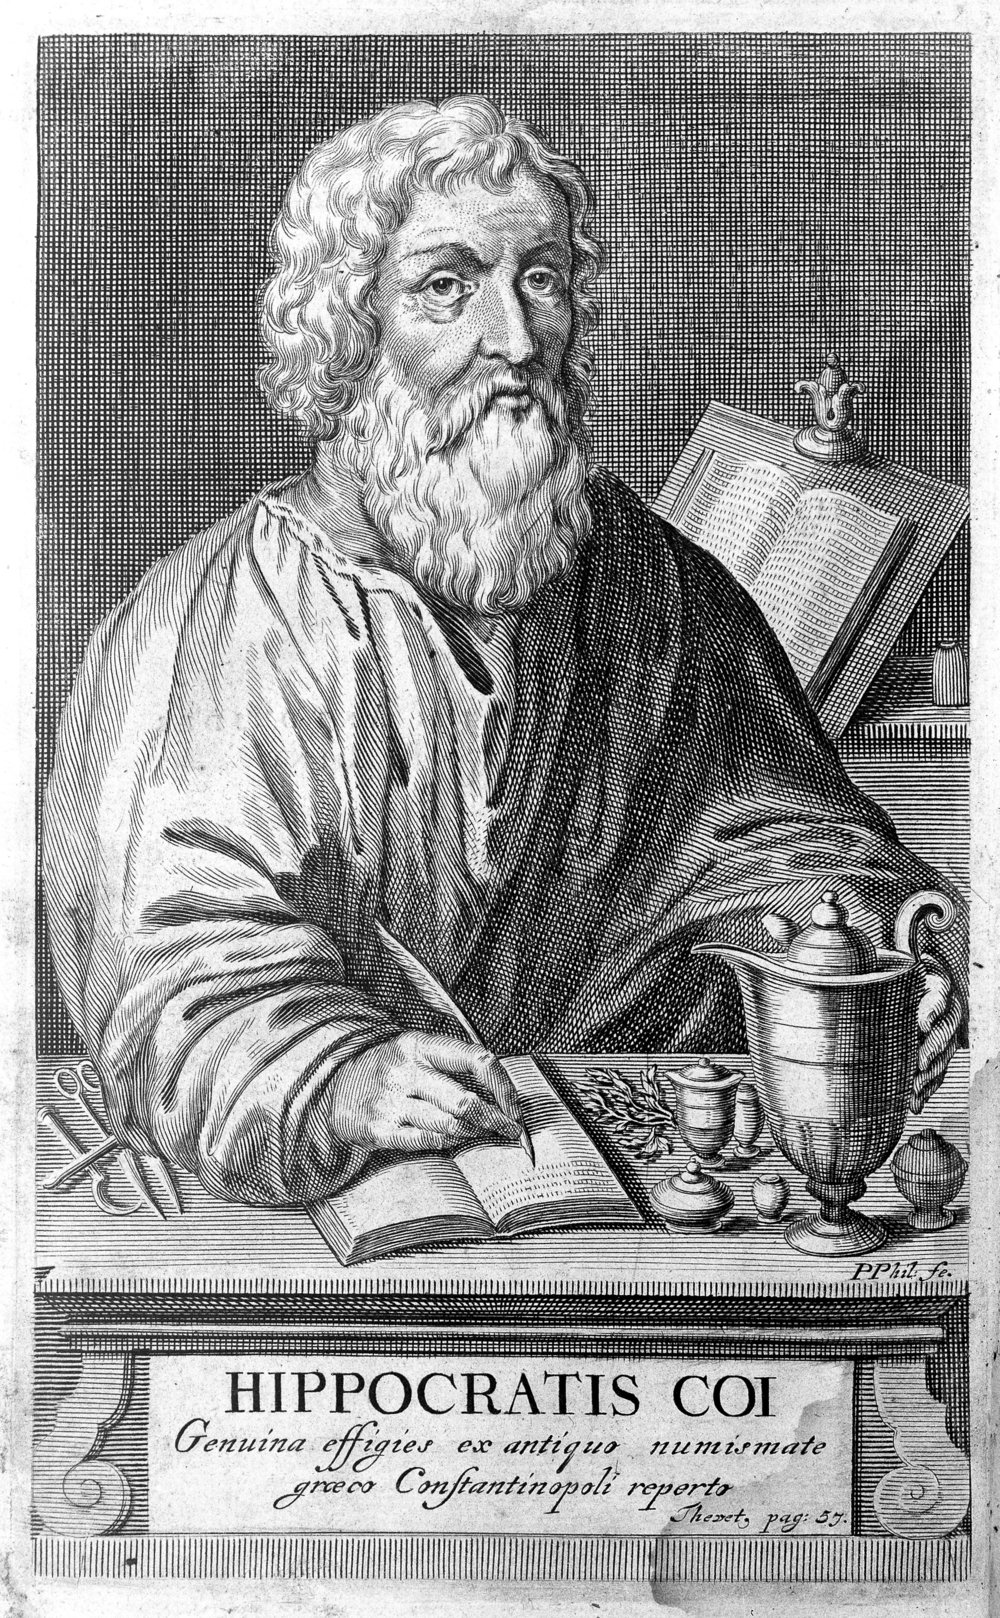 Portrait of Hippocrates from Linden, Magni Hippocratis...1665. By Van der Linden, J.A. editor. [ CC BY-SA 4.0  ], via Wikimedia Commons.